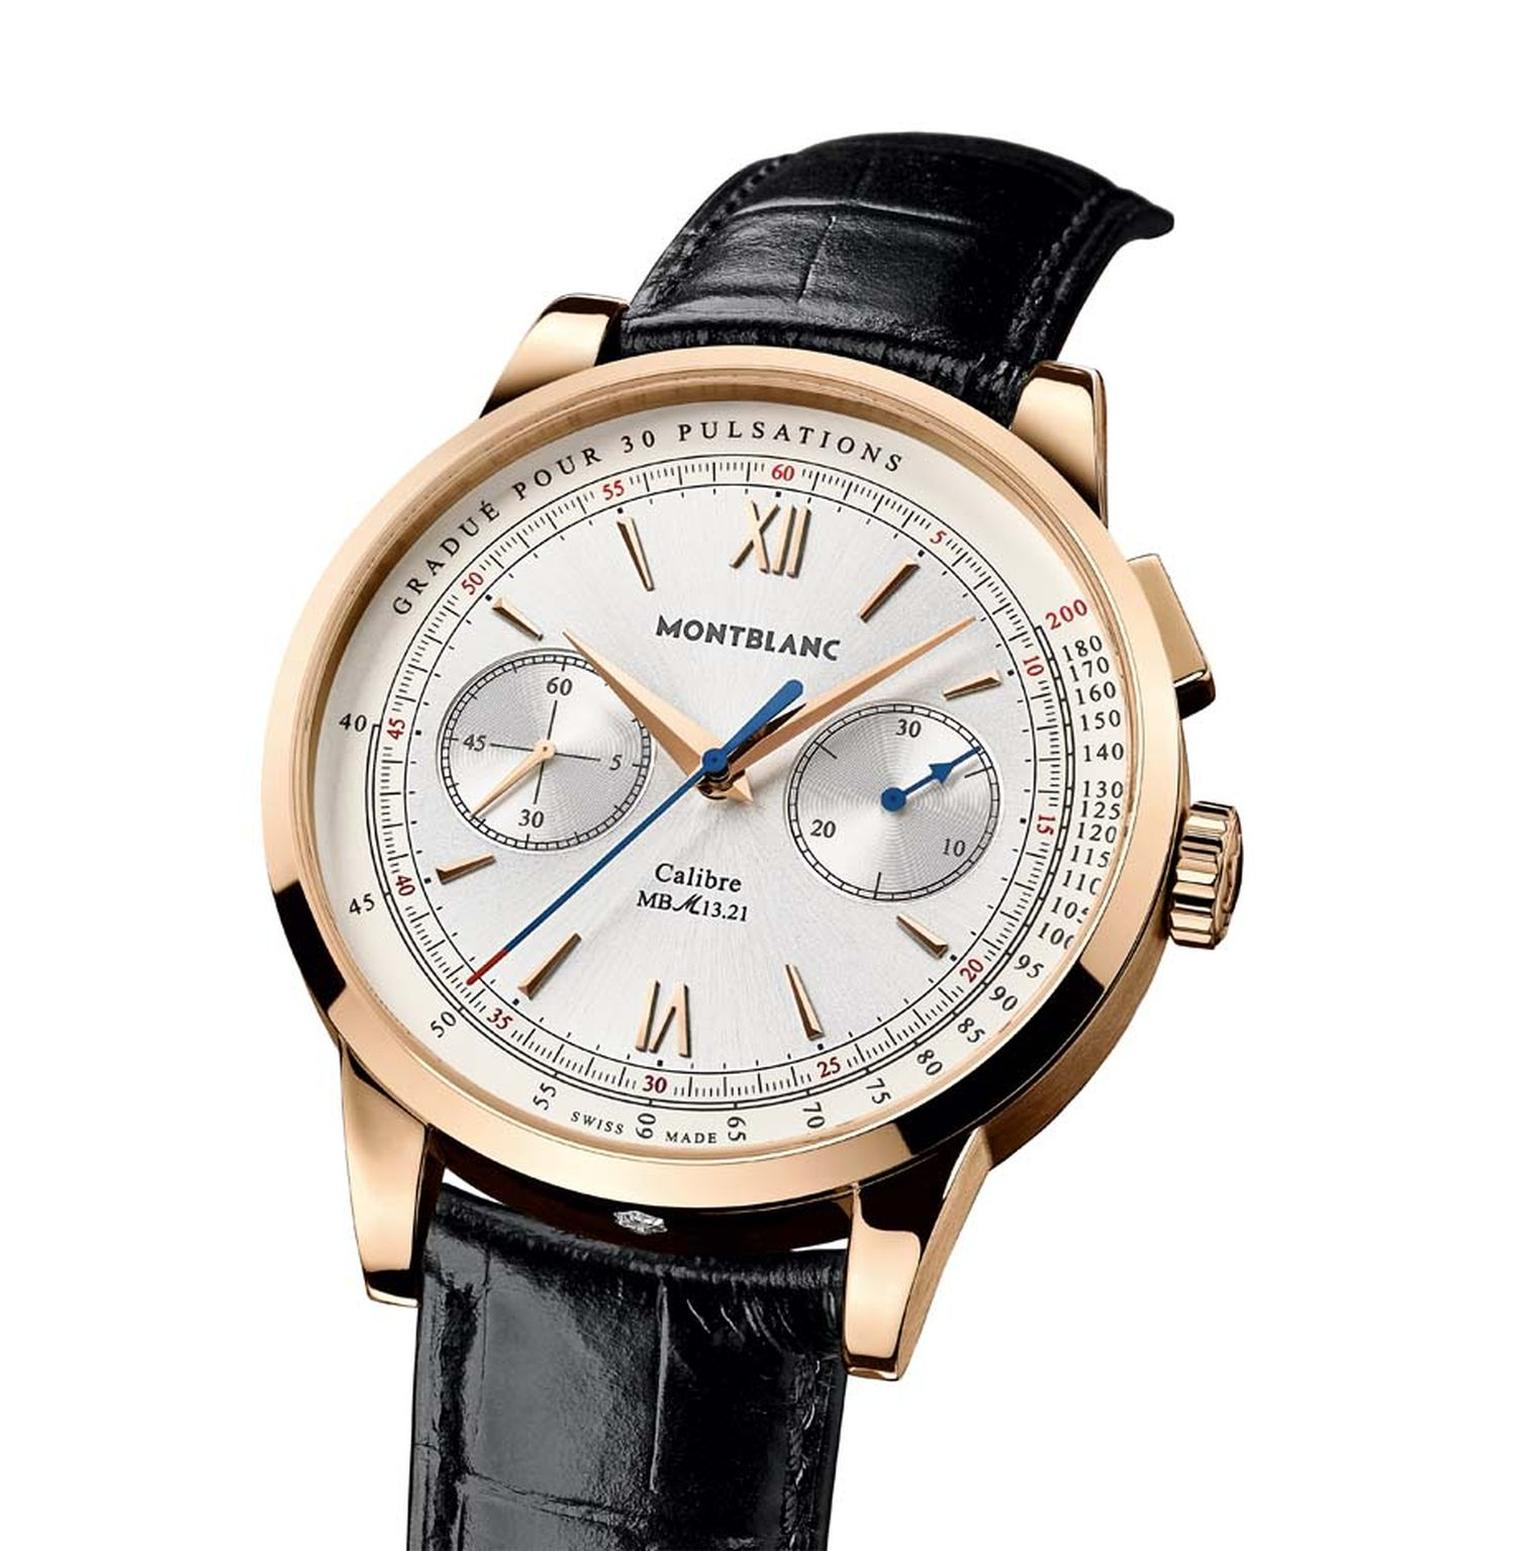 The Montblanc Meisterstück Heritage Pulsograph is also a monopusher chronograph with a pulsometer scale presented in an elegant 41mm rose gold case with a hand-wound movement.